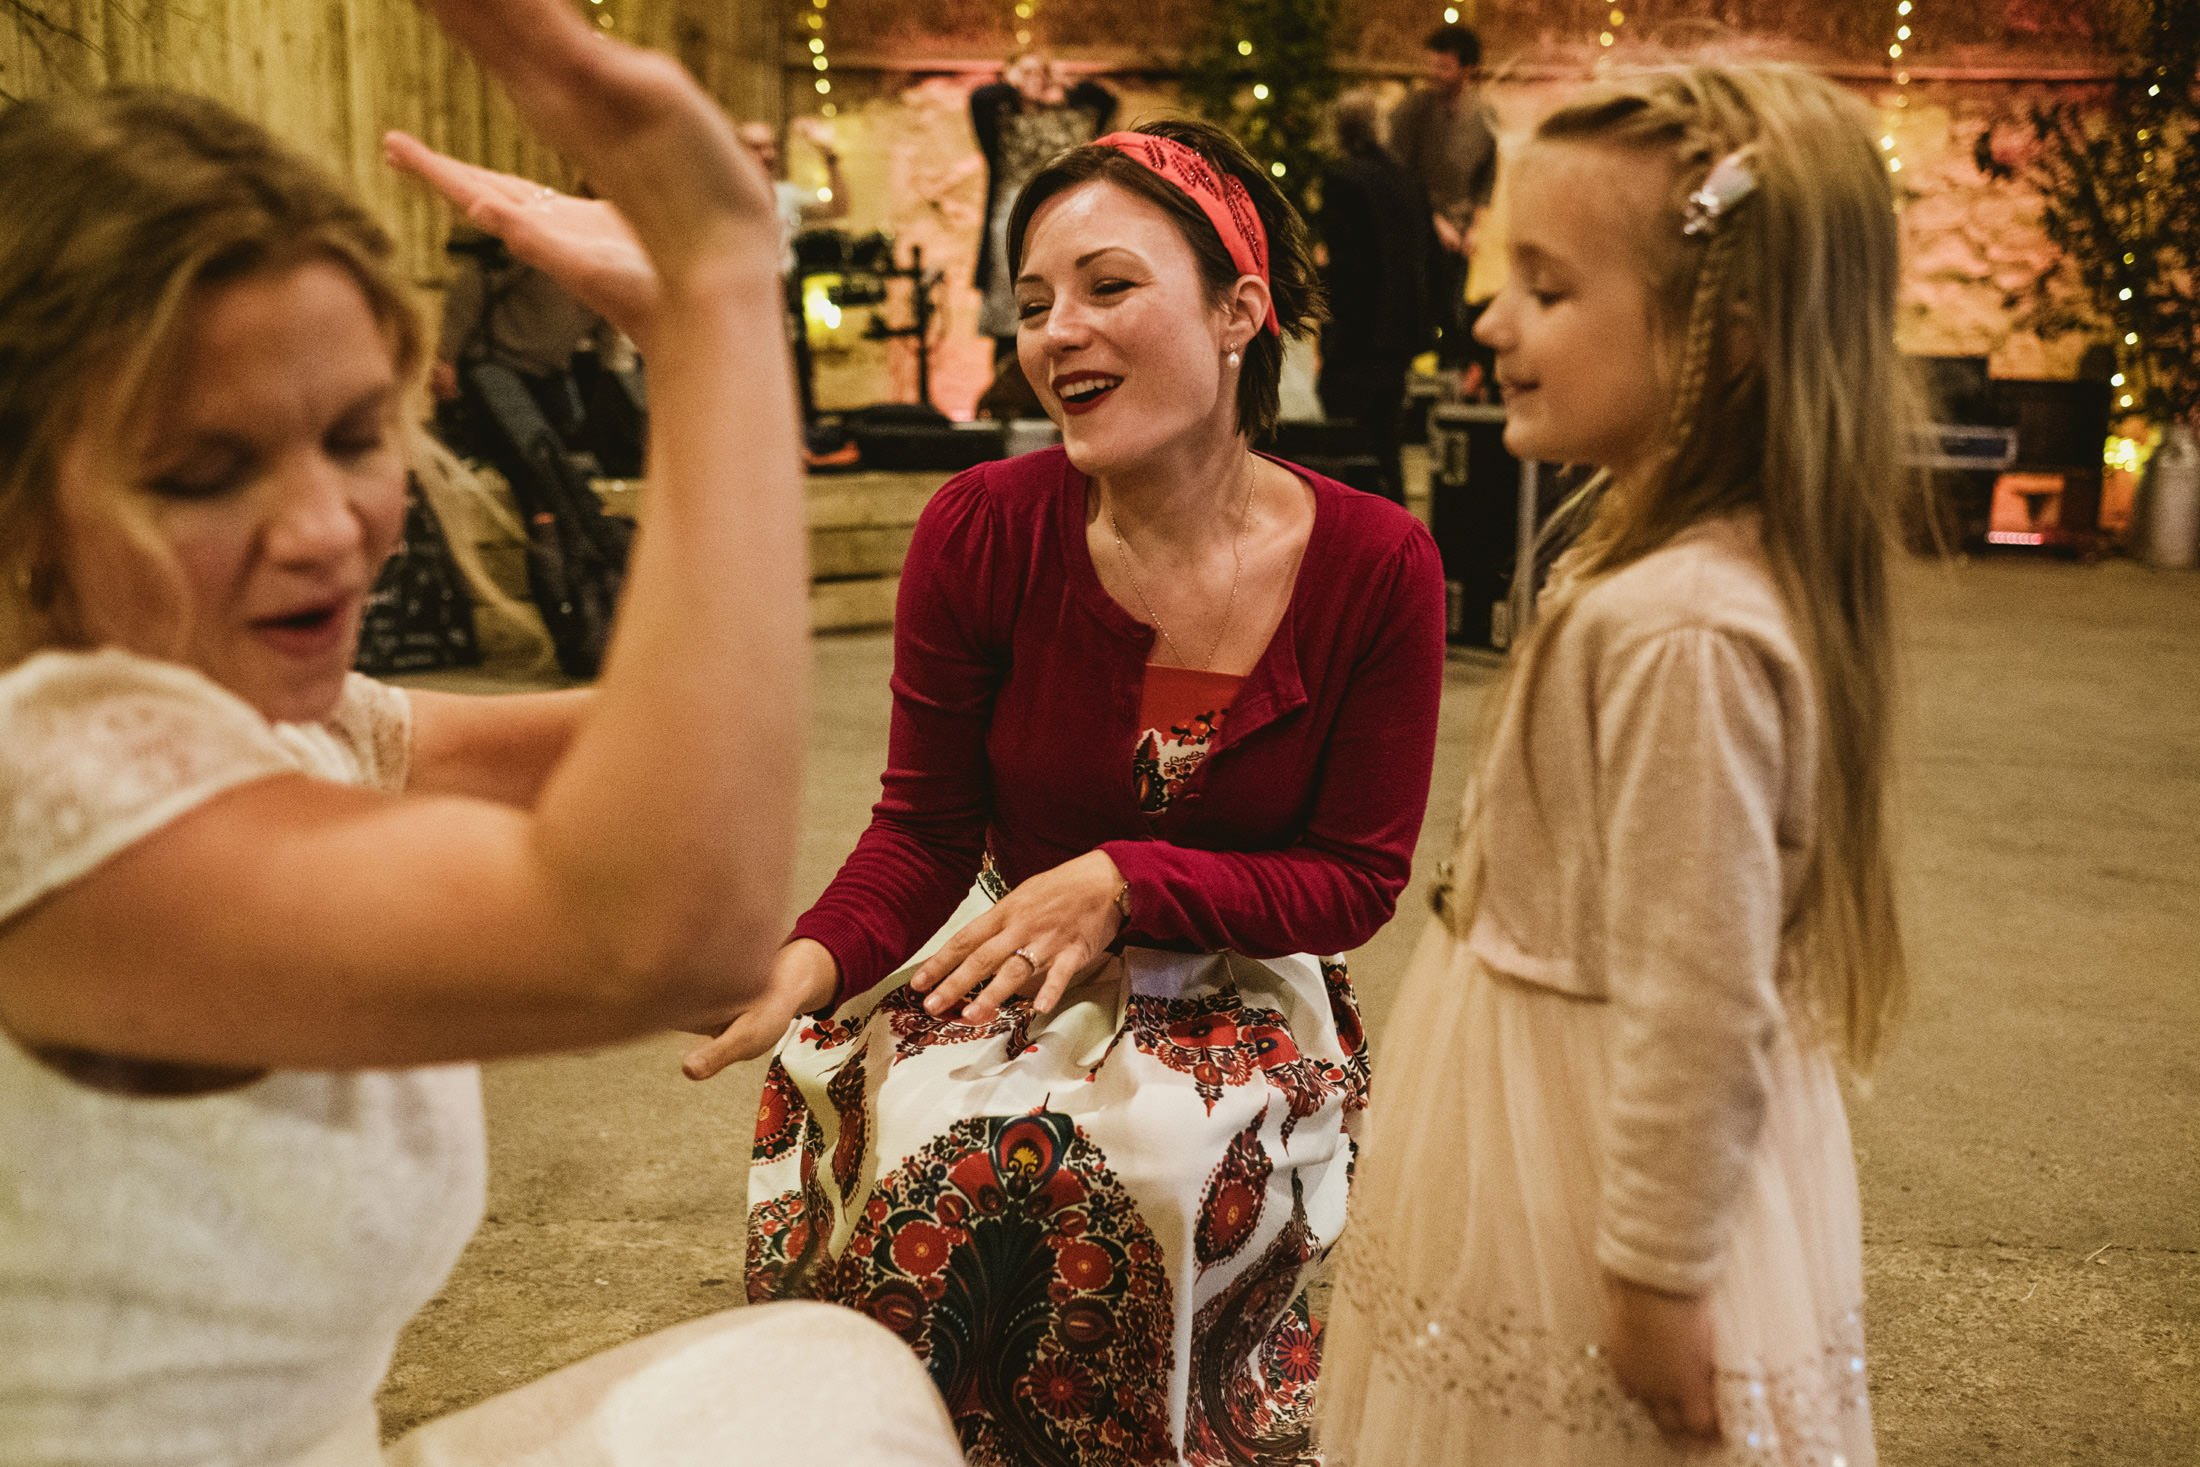 wedding guest with her two children and bride all dancing together